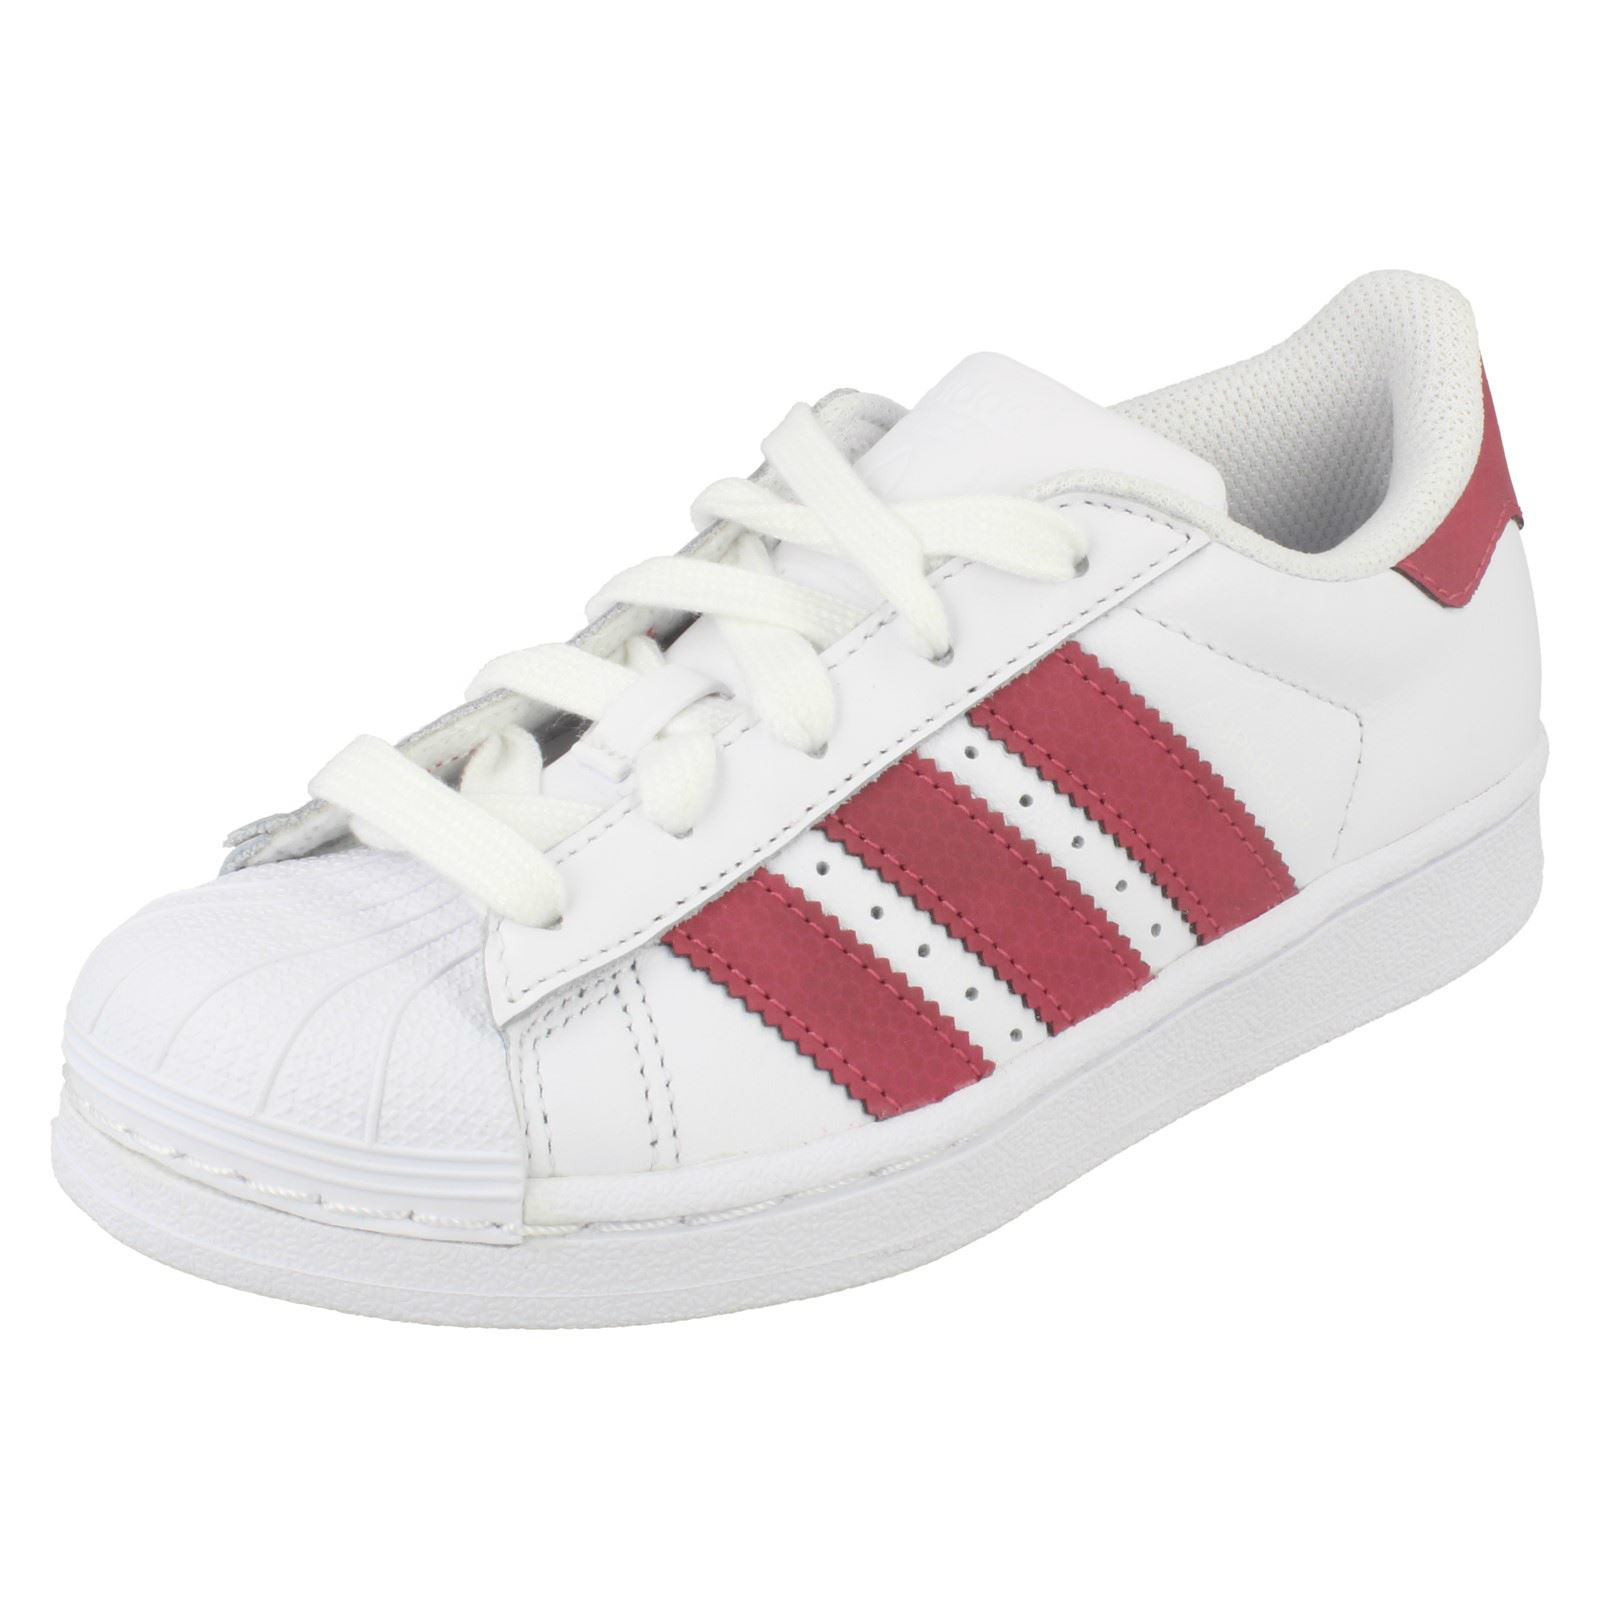 adidas ragazza superstar